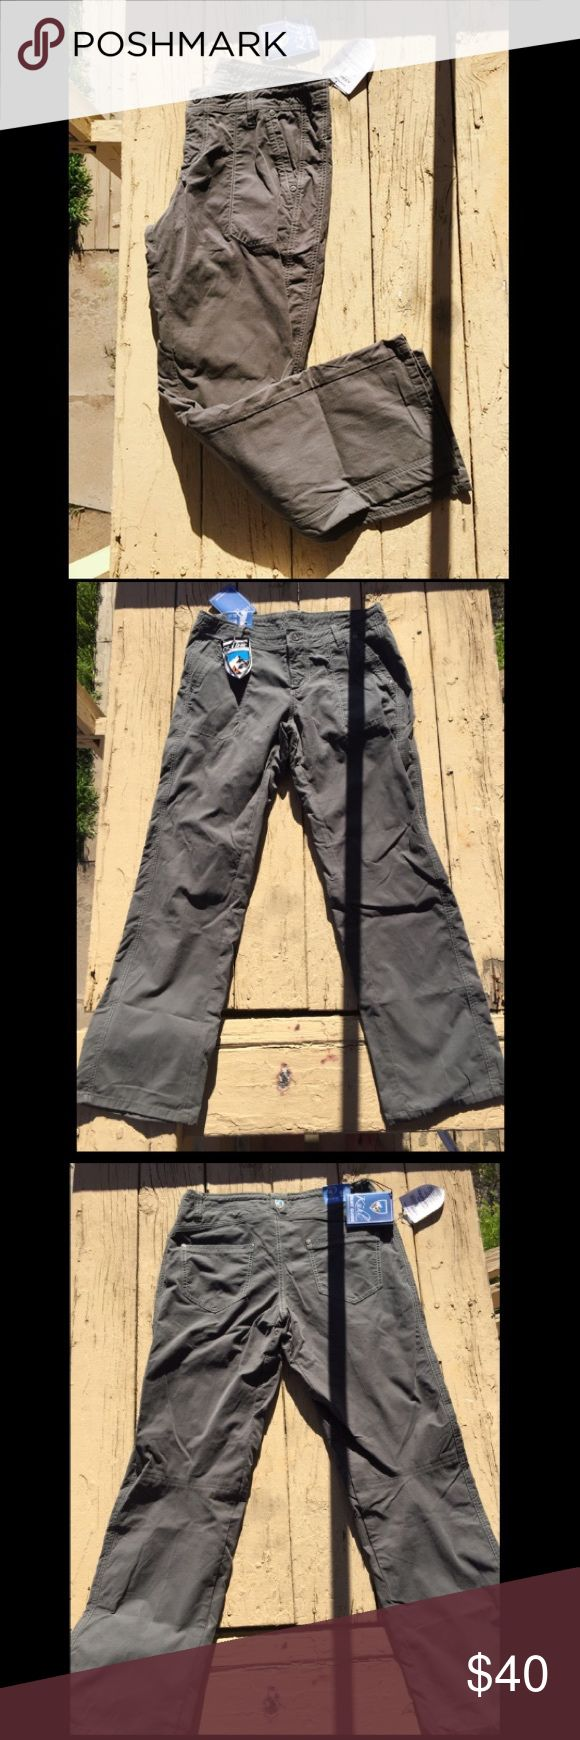 "Kendra Outdoor Pants A really amazing brand, made for all types of outdoor adventures. Brand new with tags, never been worn. Material is durable and nice. Have an inseem of 30"". Brand is Kuhl but listed as Patagonia for exposure. Bought for $80. Patagonia Pants"